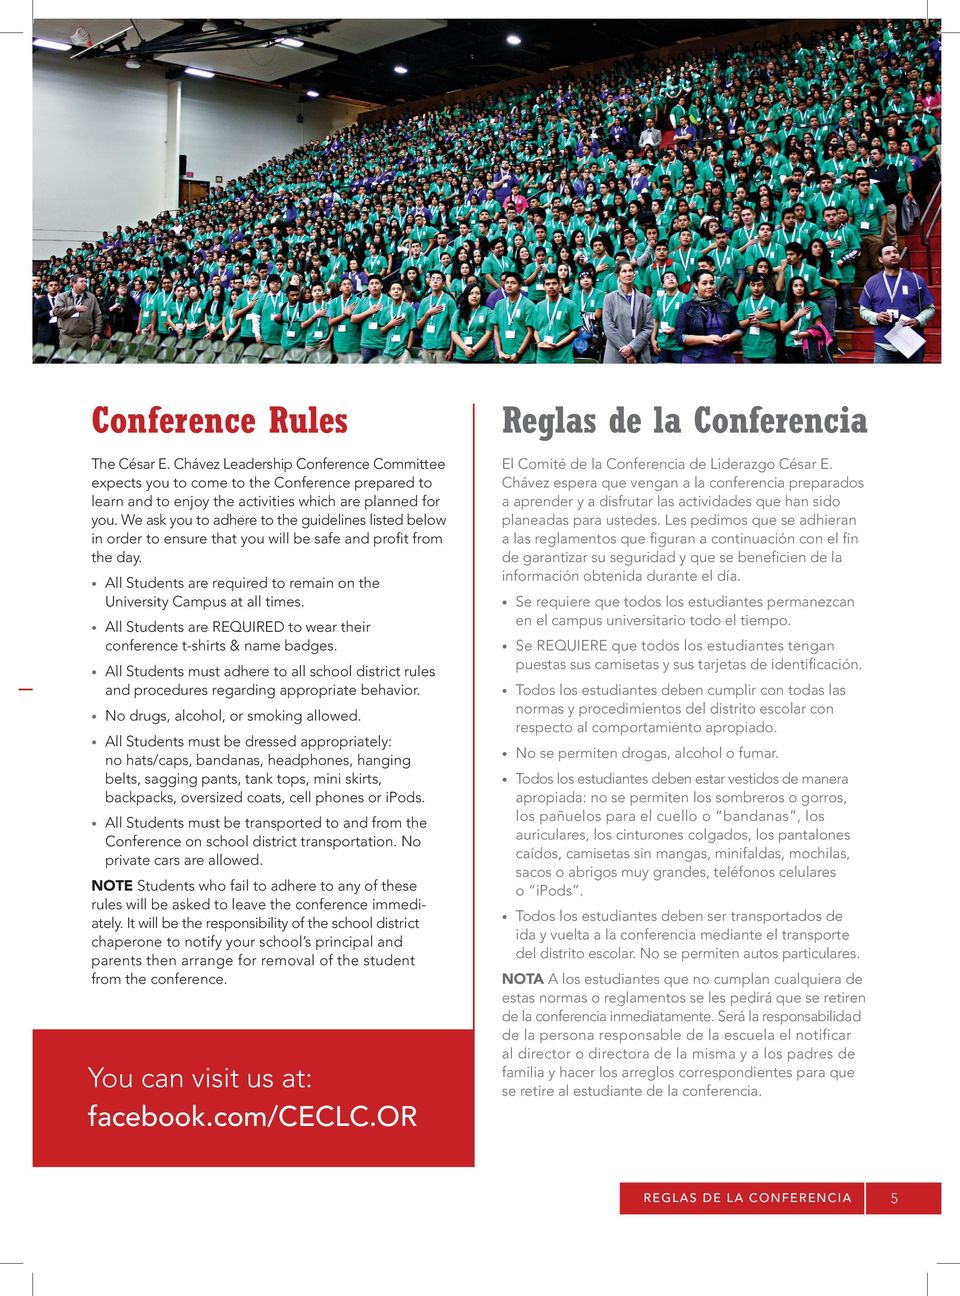 We ask you to adhere to the guidelines listed below in order to ensure that you will be safe and profit from the day. El Comité de la Conferencia de Liderazgo César E.